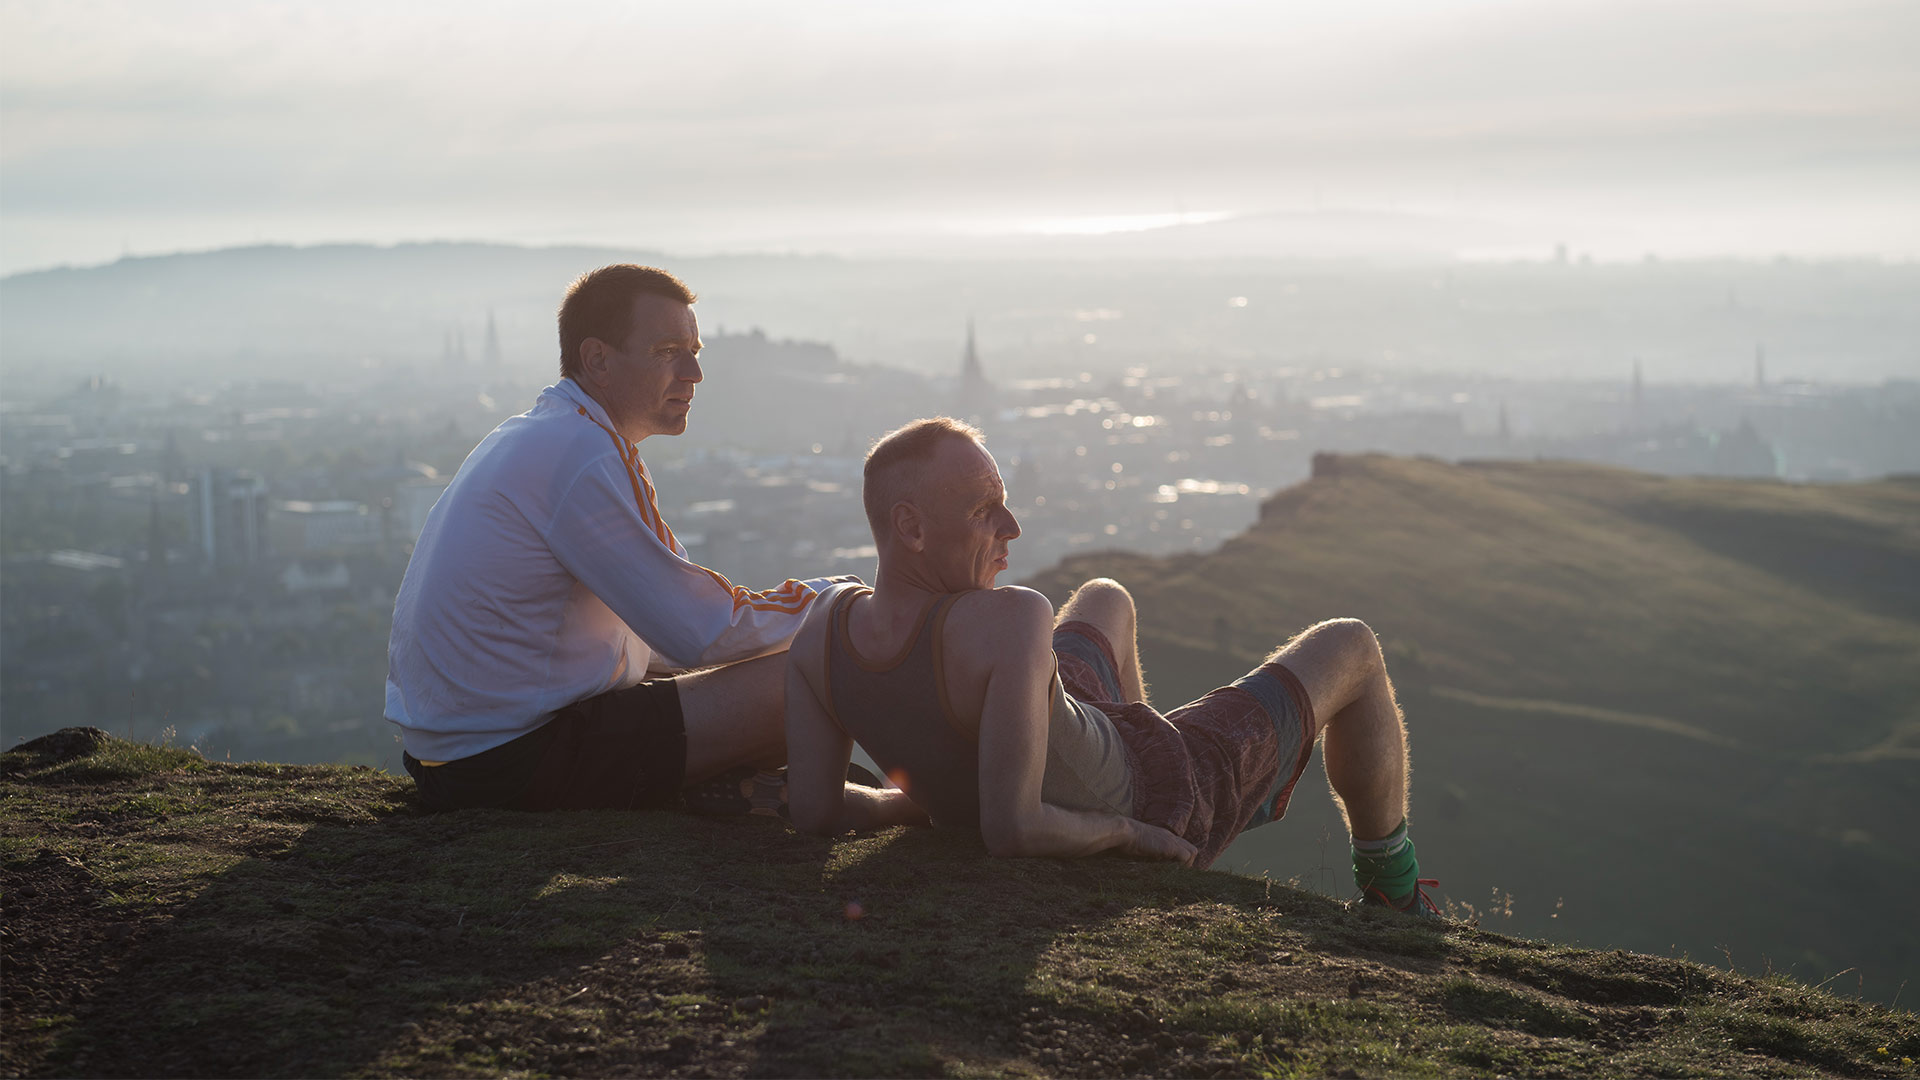 Image from T2 Trainspotting